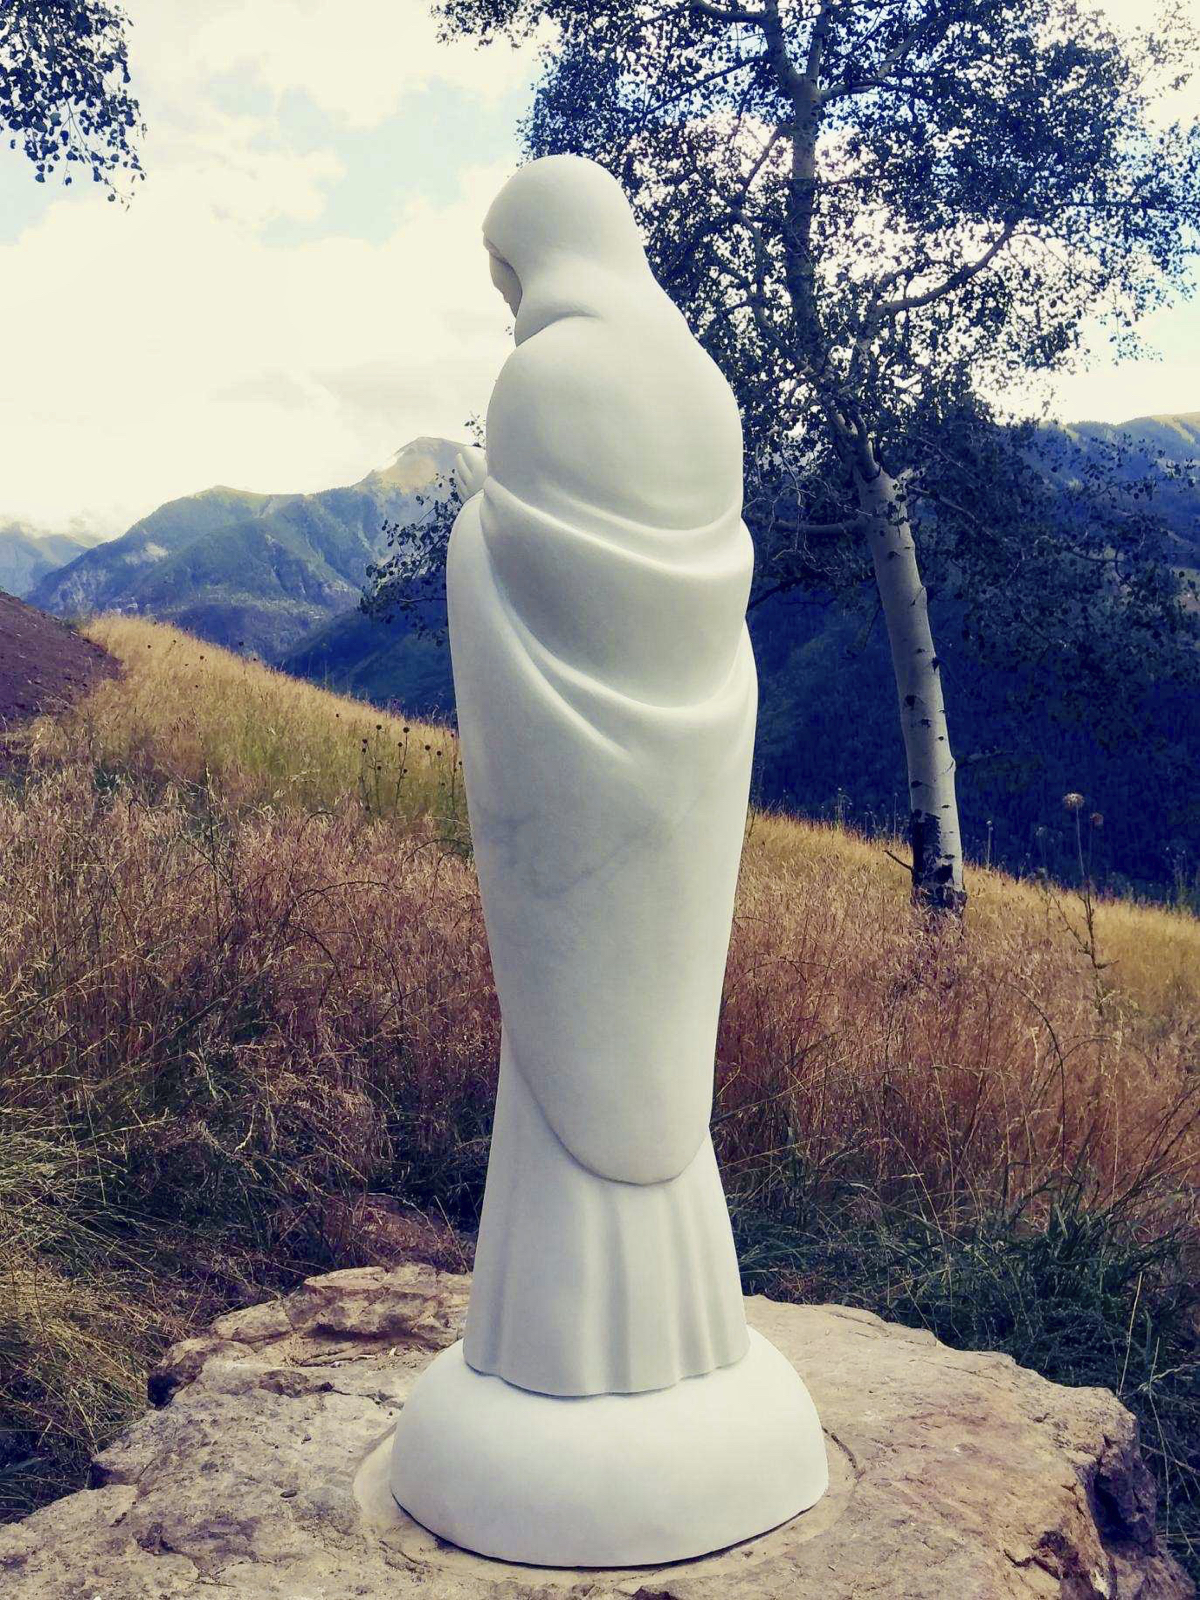 Madonna sculpture, outdoor, details from behind